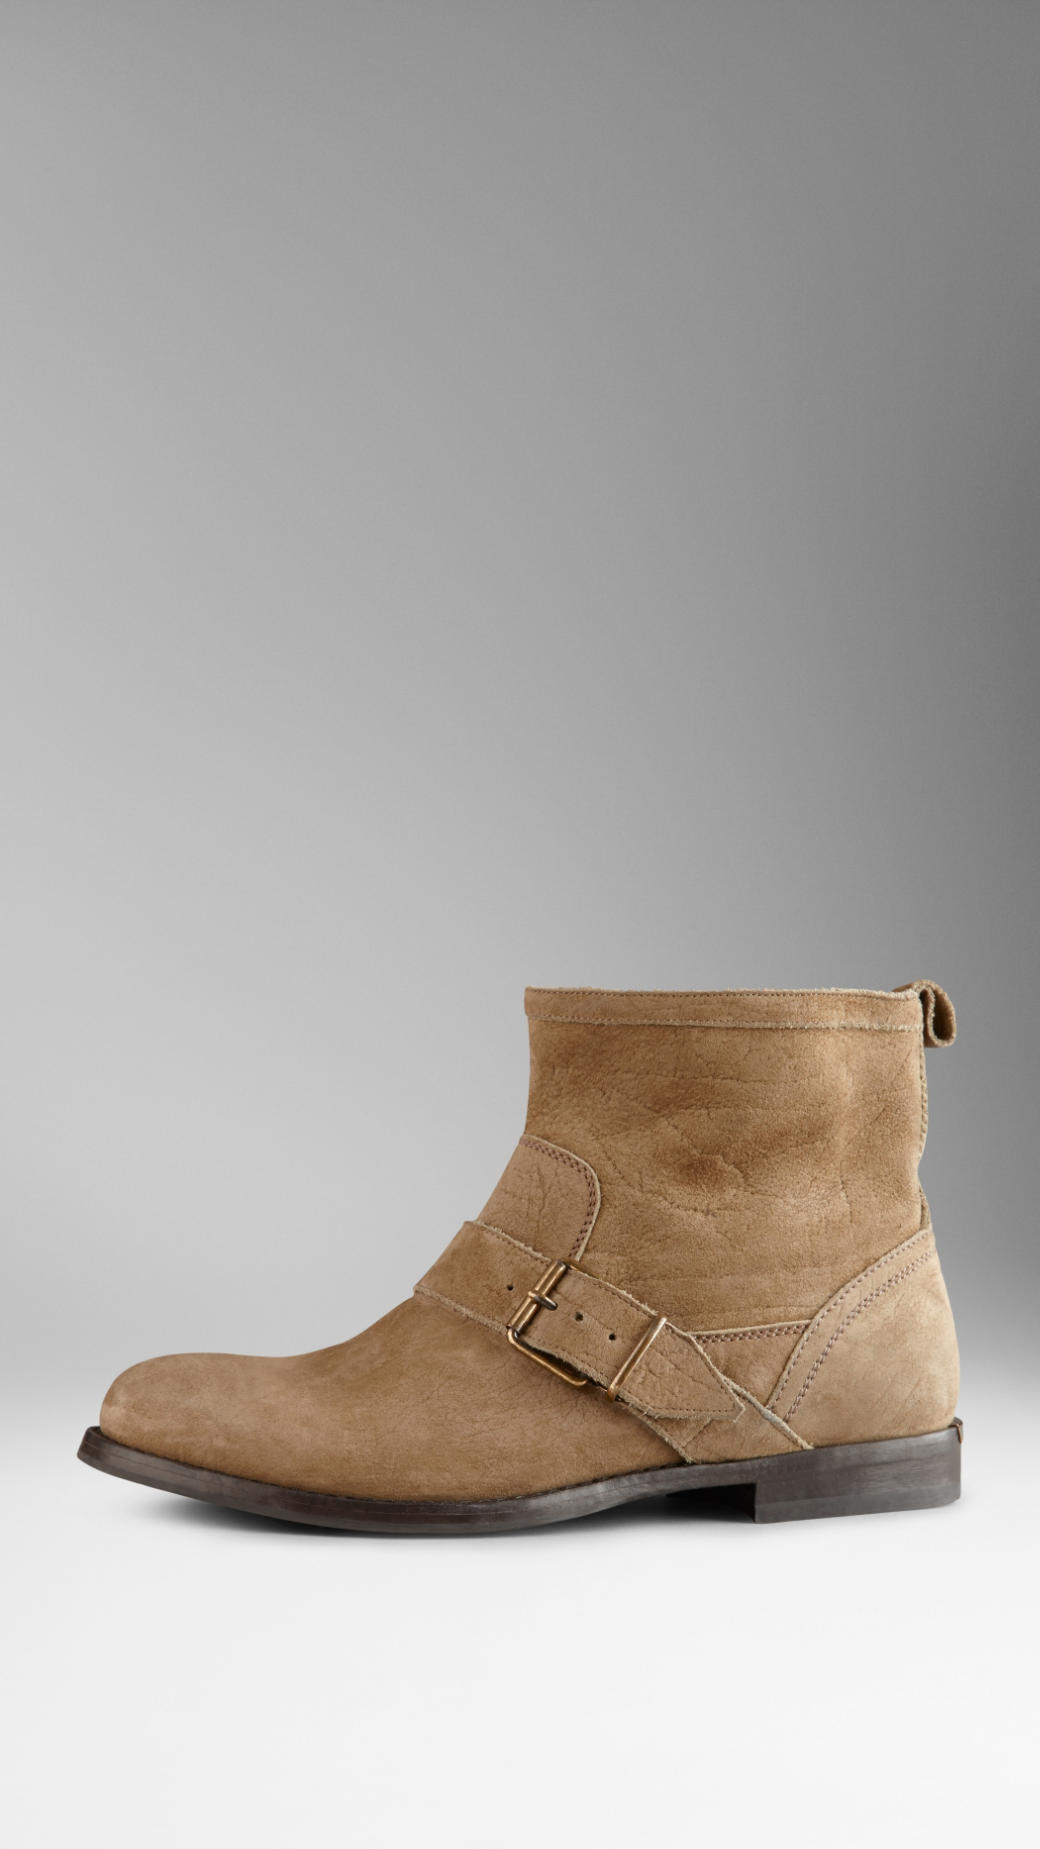 b4c1dce2aba Lyst - Burberry Buckle Detail Suede Ankle Boots in Natural